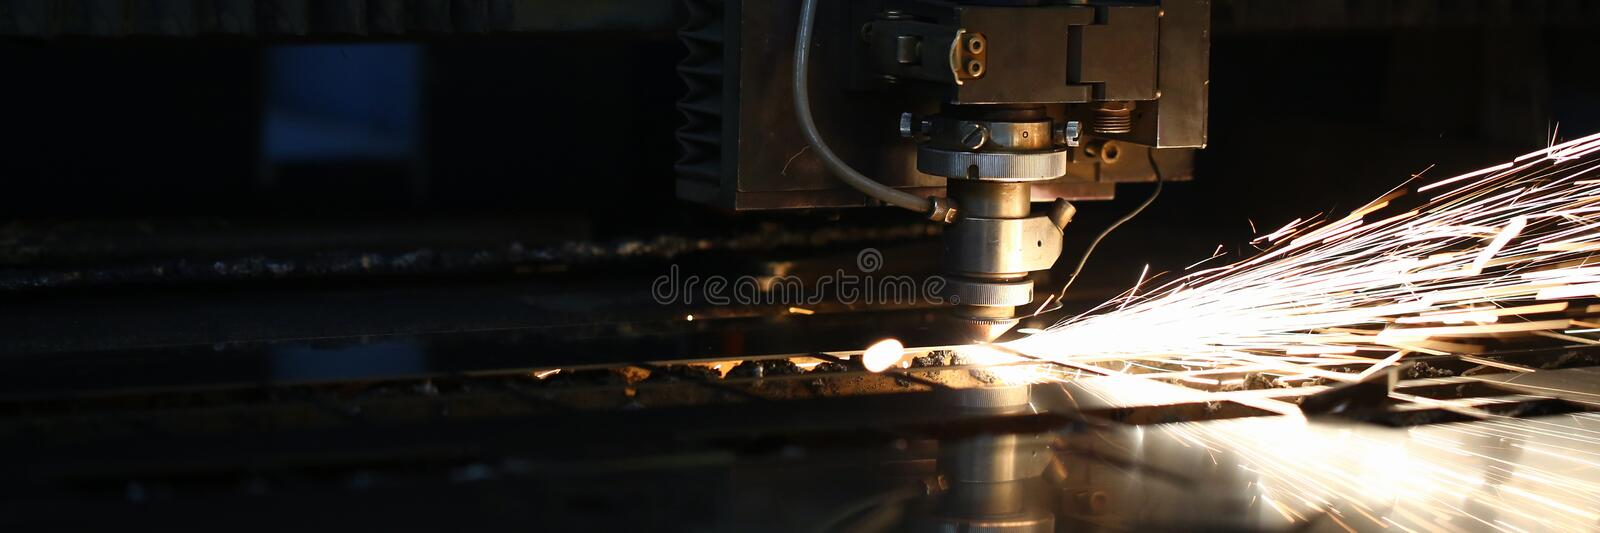 Sparks fly out machine head for metal processing royalty free stock photo